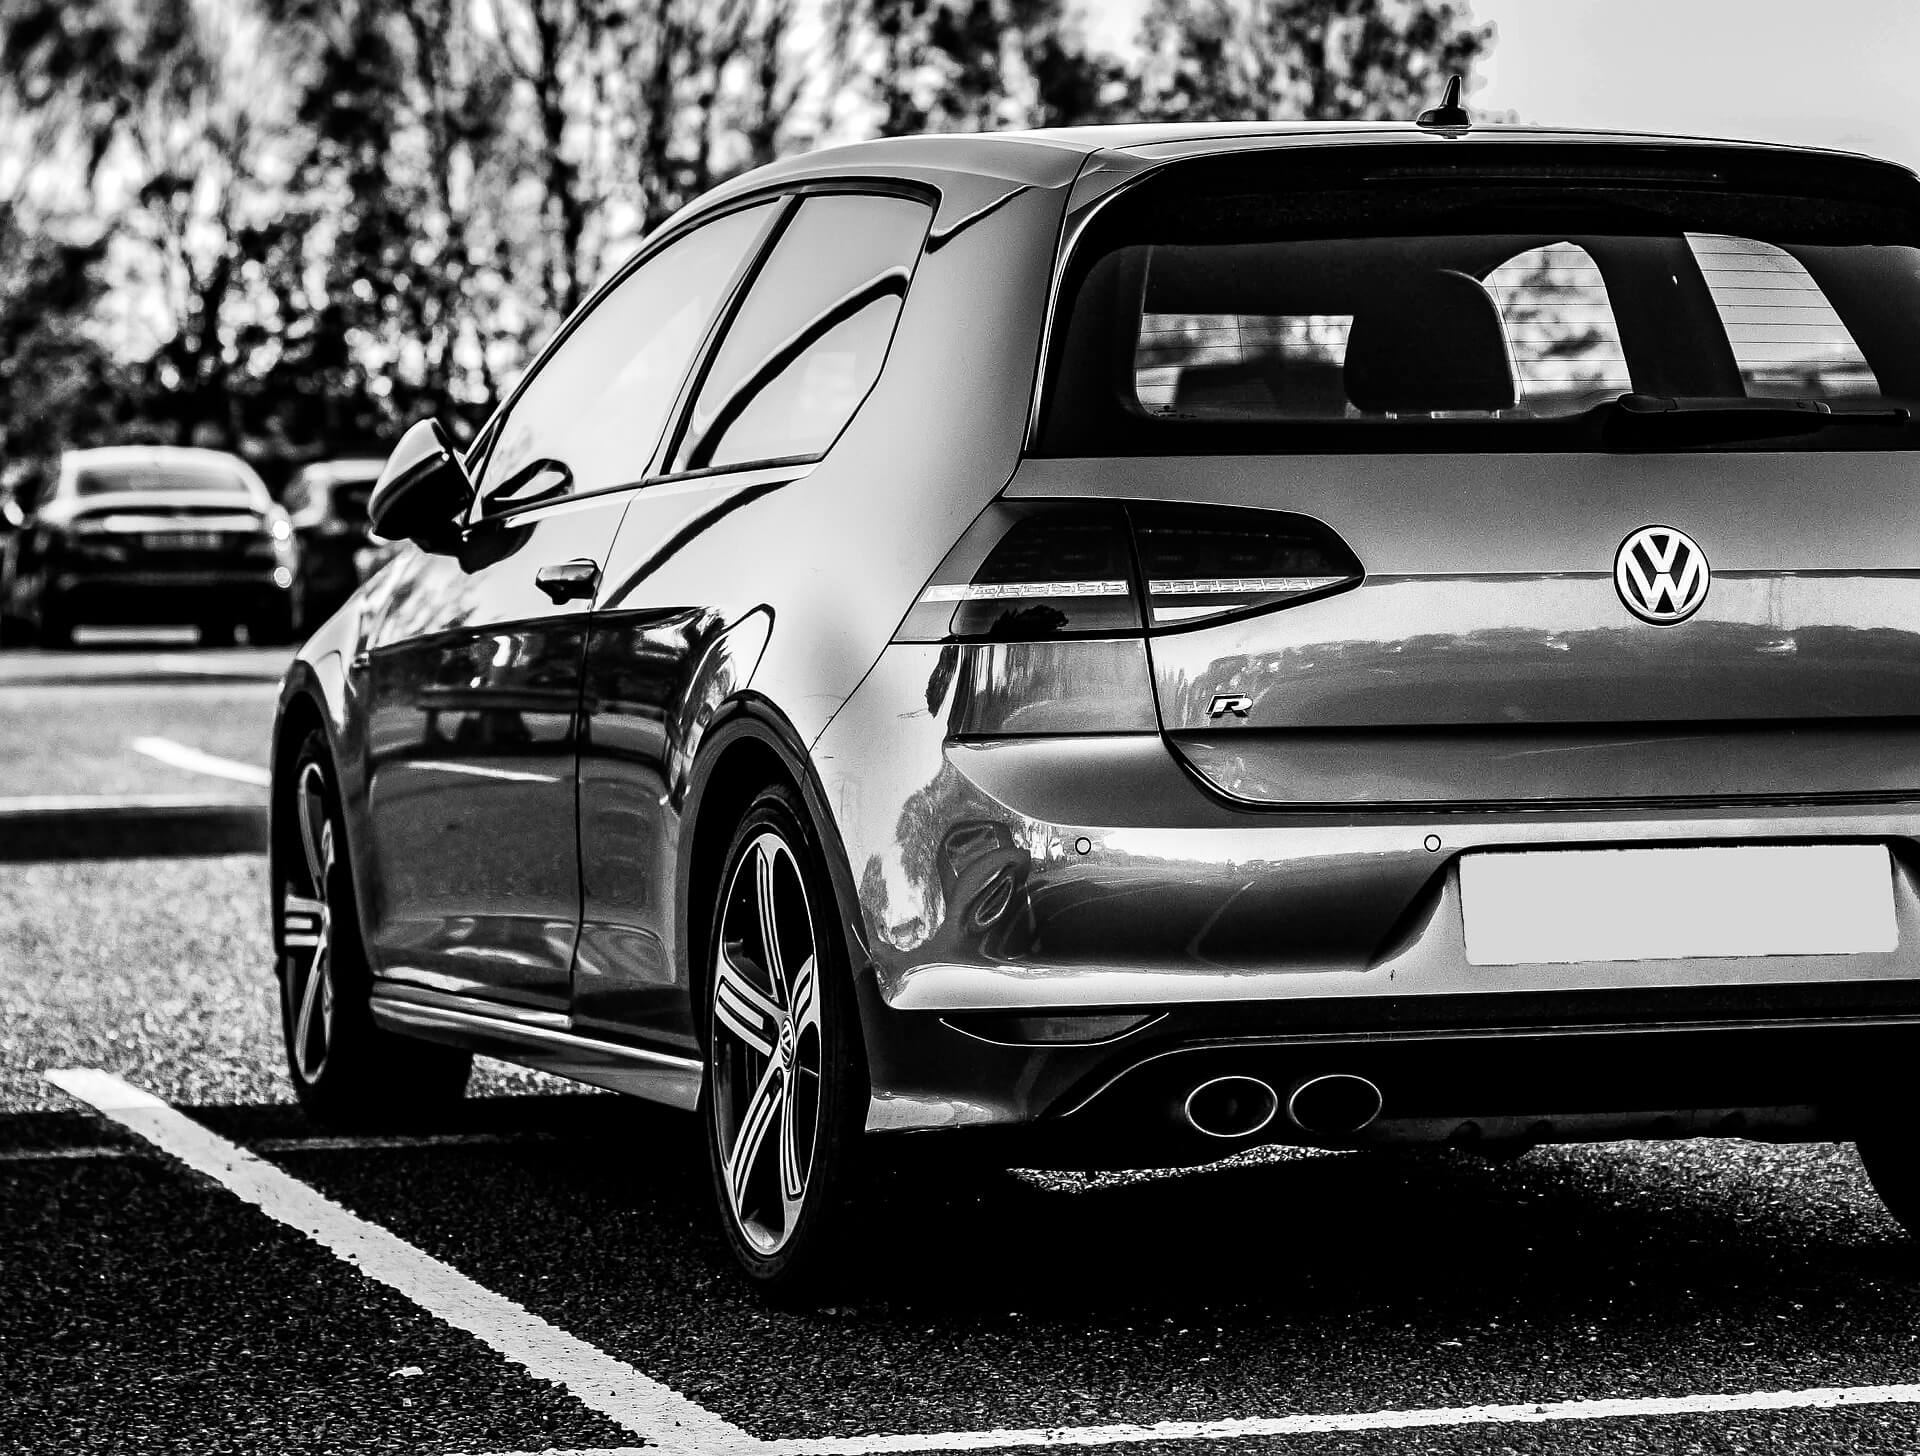 Import Used Volkswagen​ From Germany